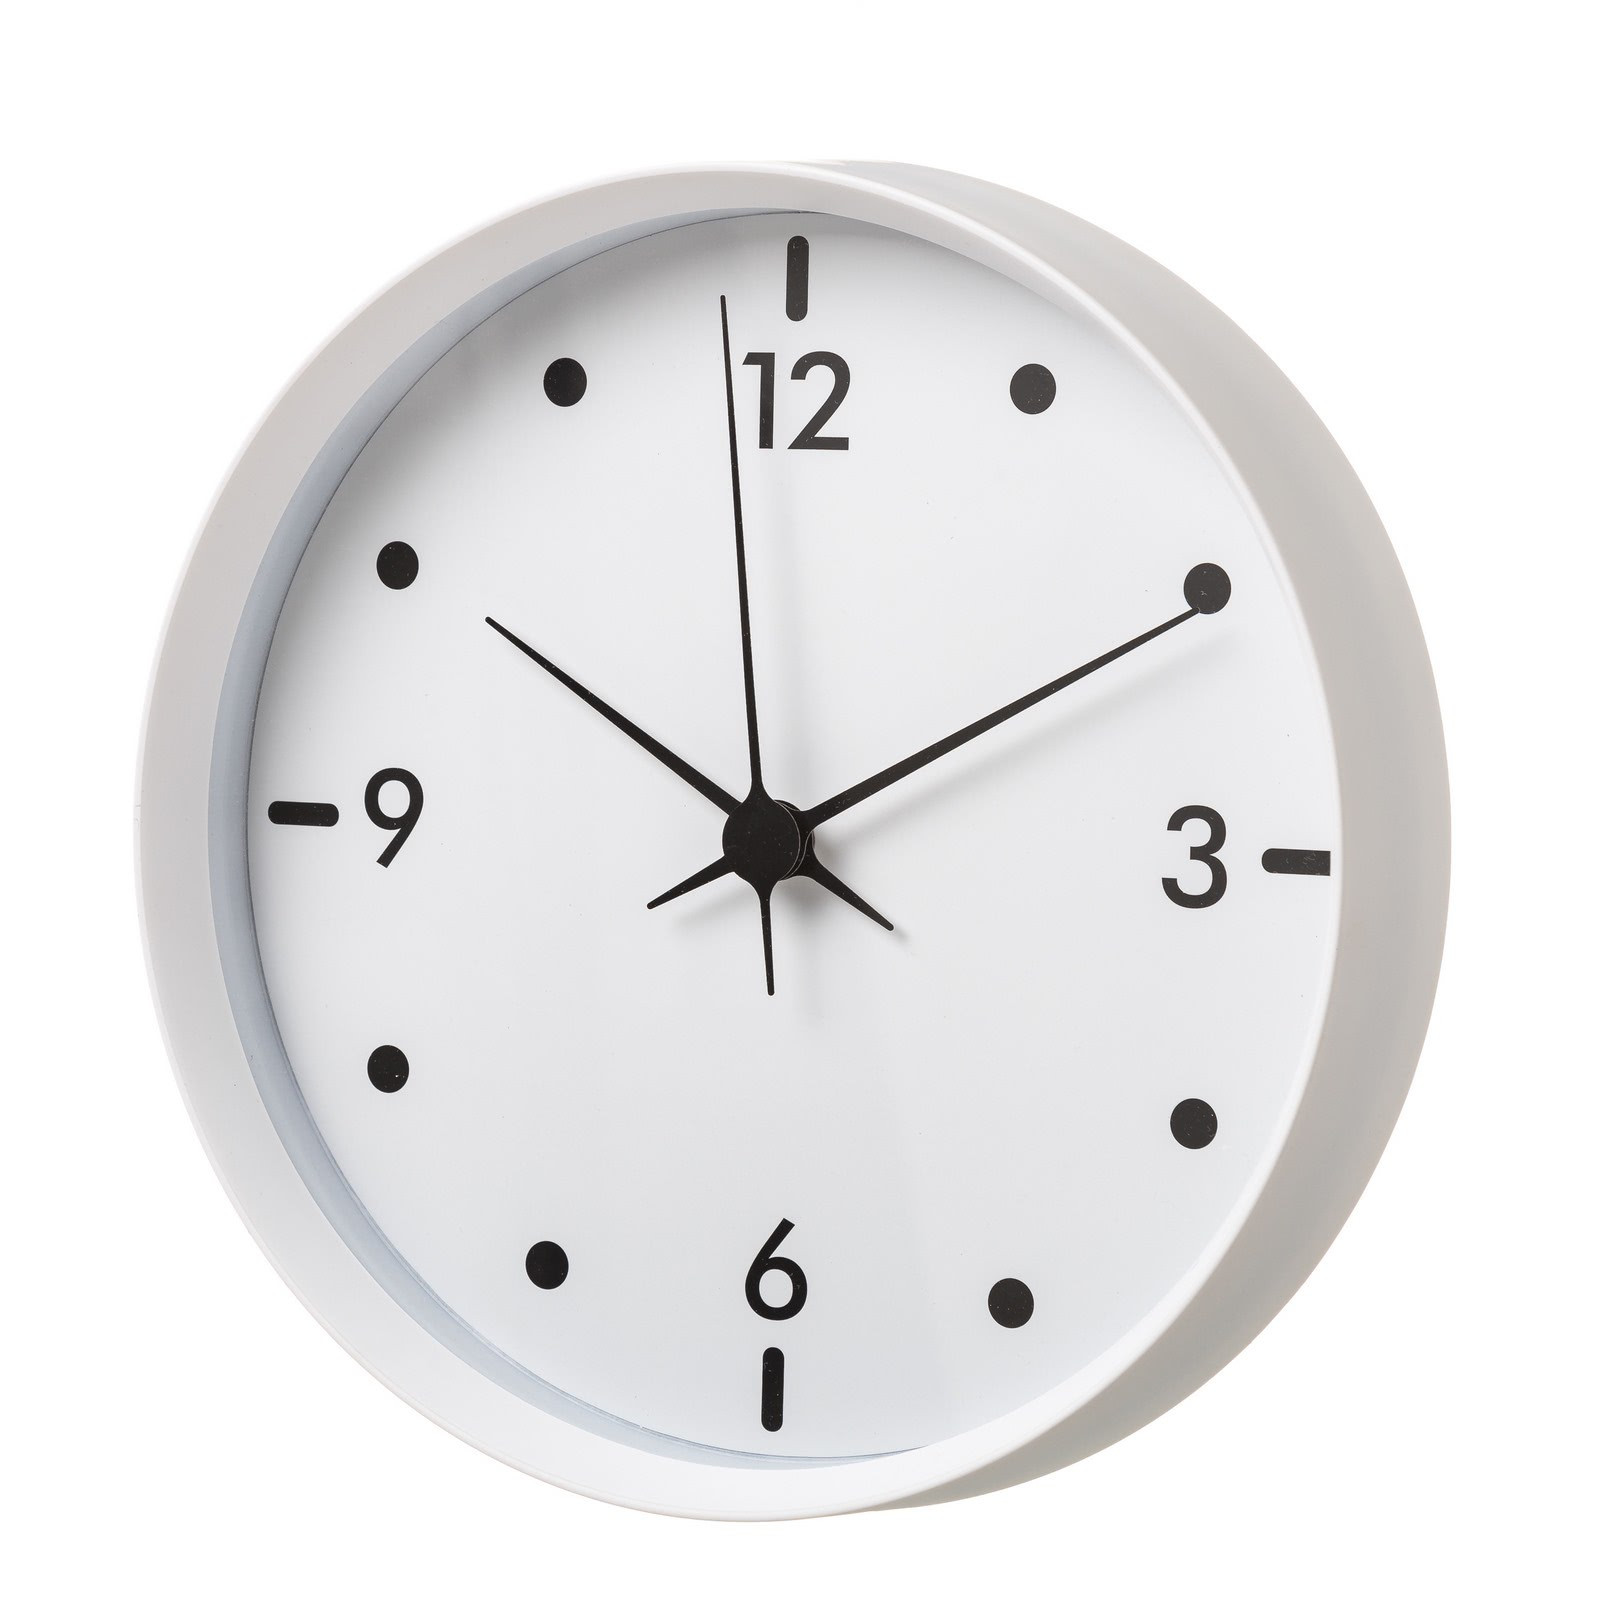 Reloj de pared minimalista blanco de pl stico lola home for Relojes de salon modernos